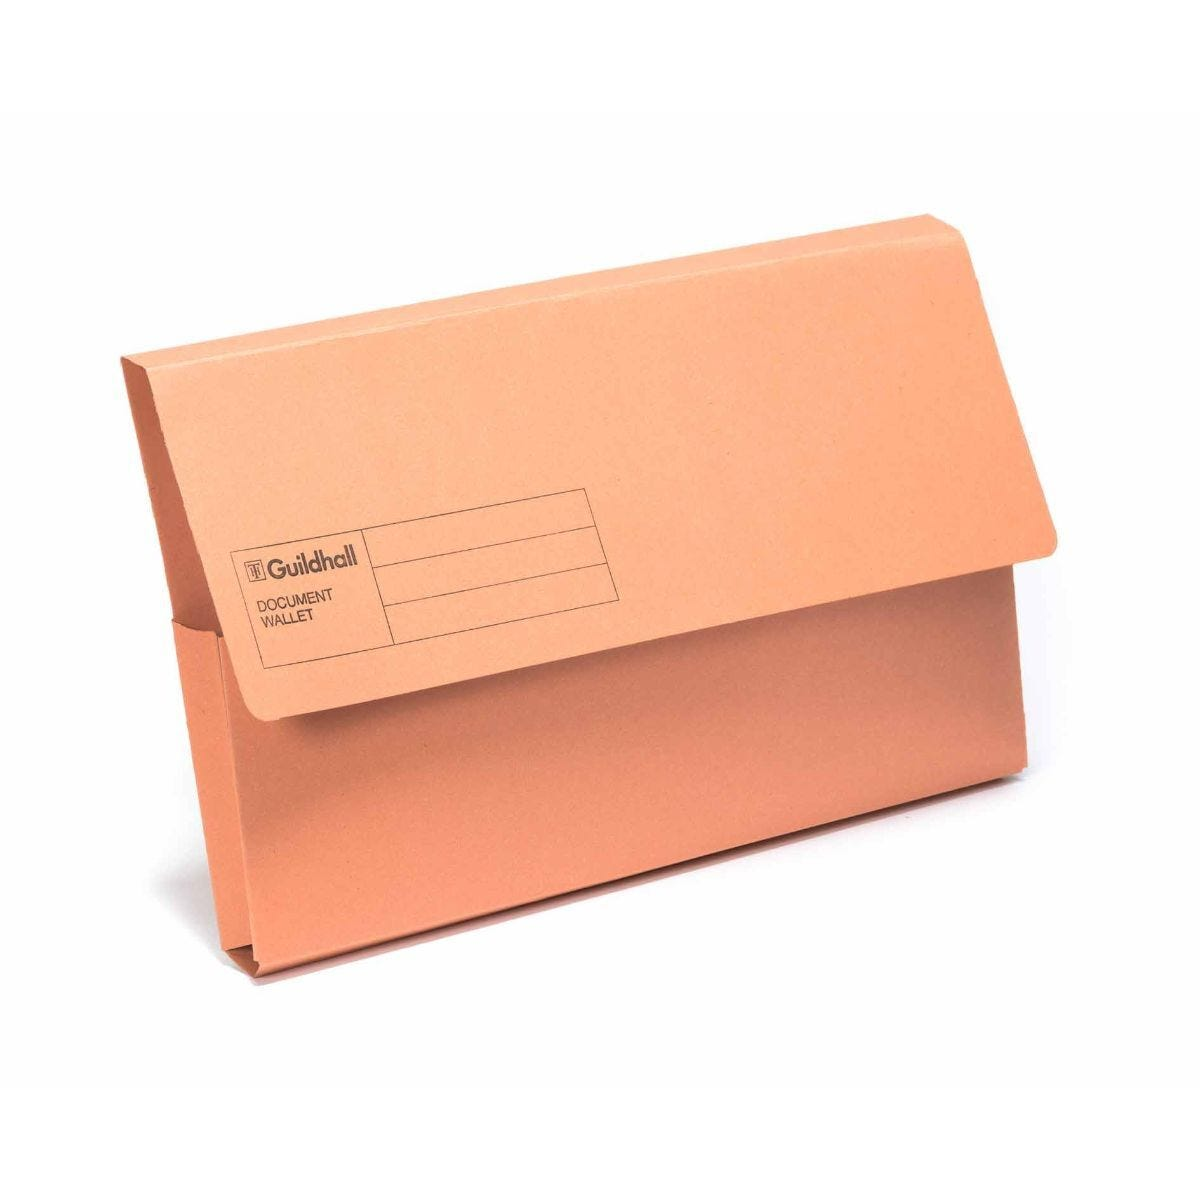 Exacompta Guildhall Document Wallet Foolscap Pack of 50 285gsm Orange